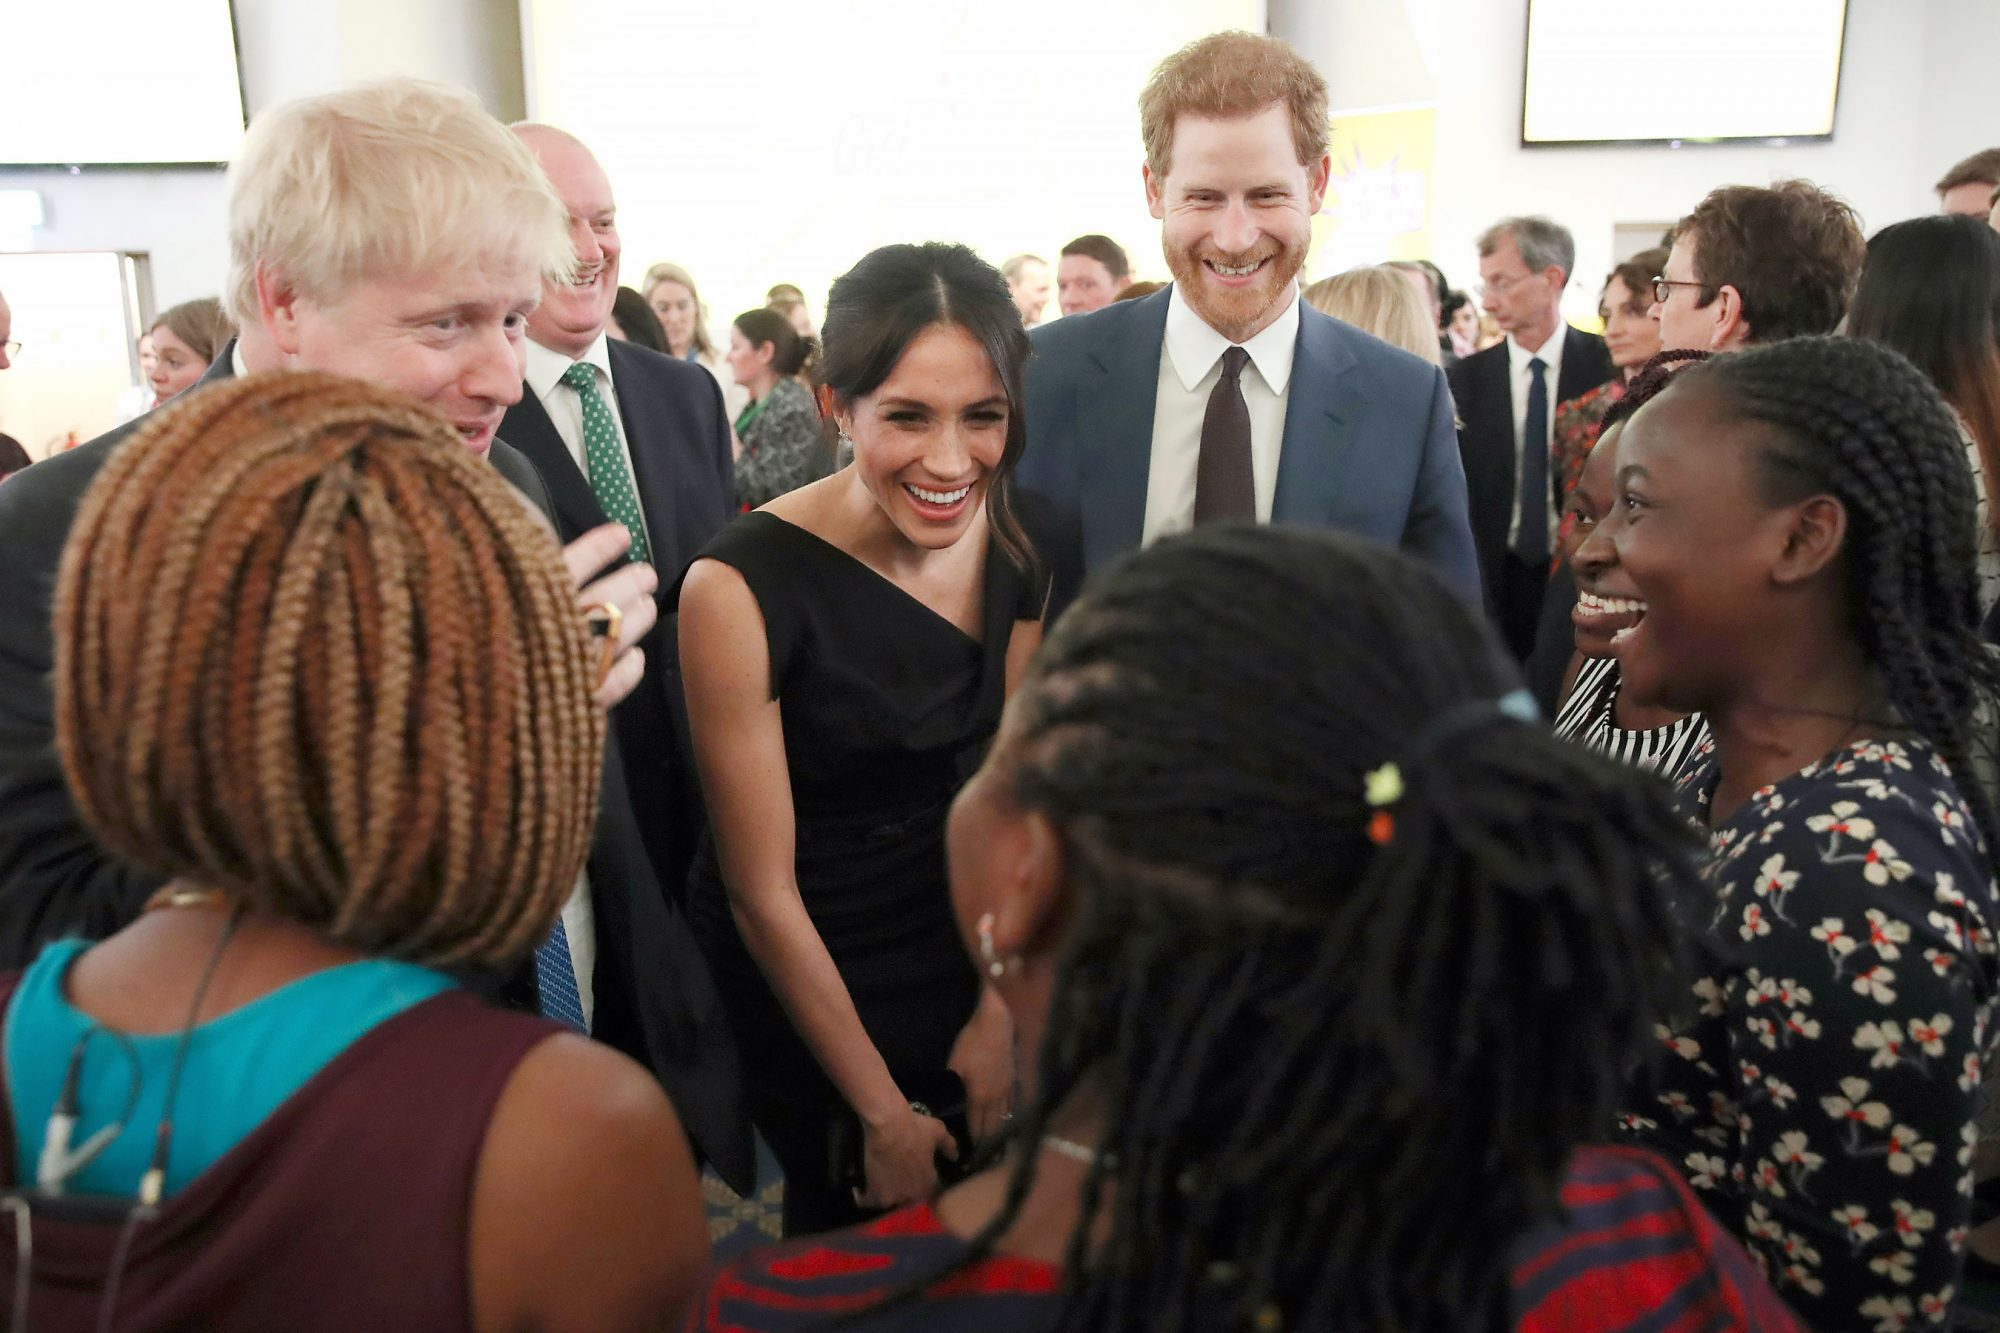 Women's Empowerment reception, Commonwealth Heads of Government Meeting, London, UK - 19 Apr 2018